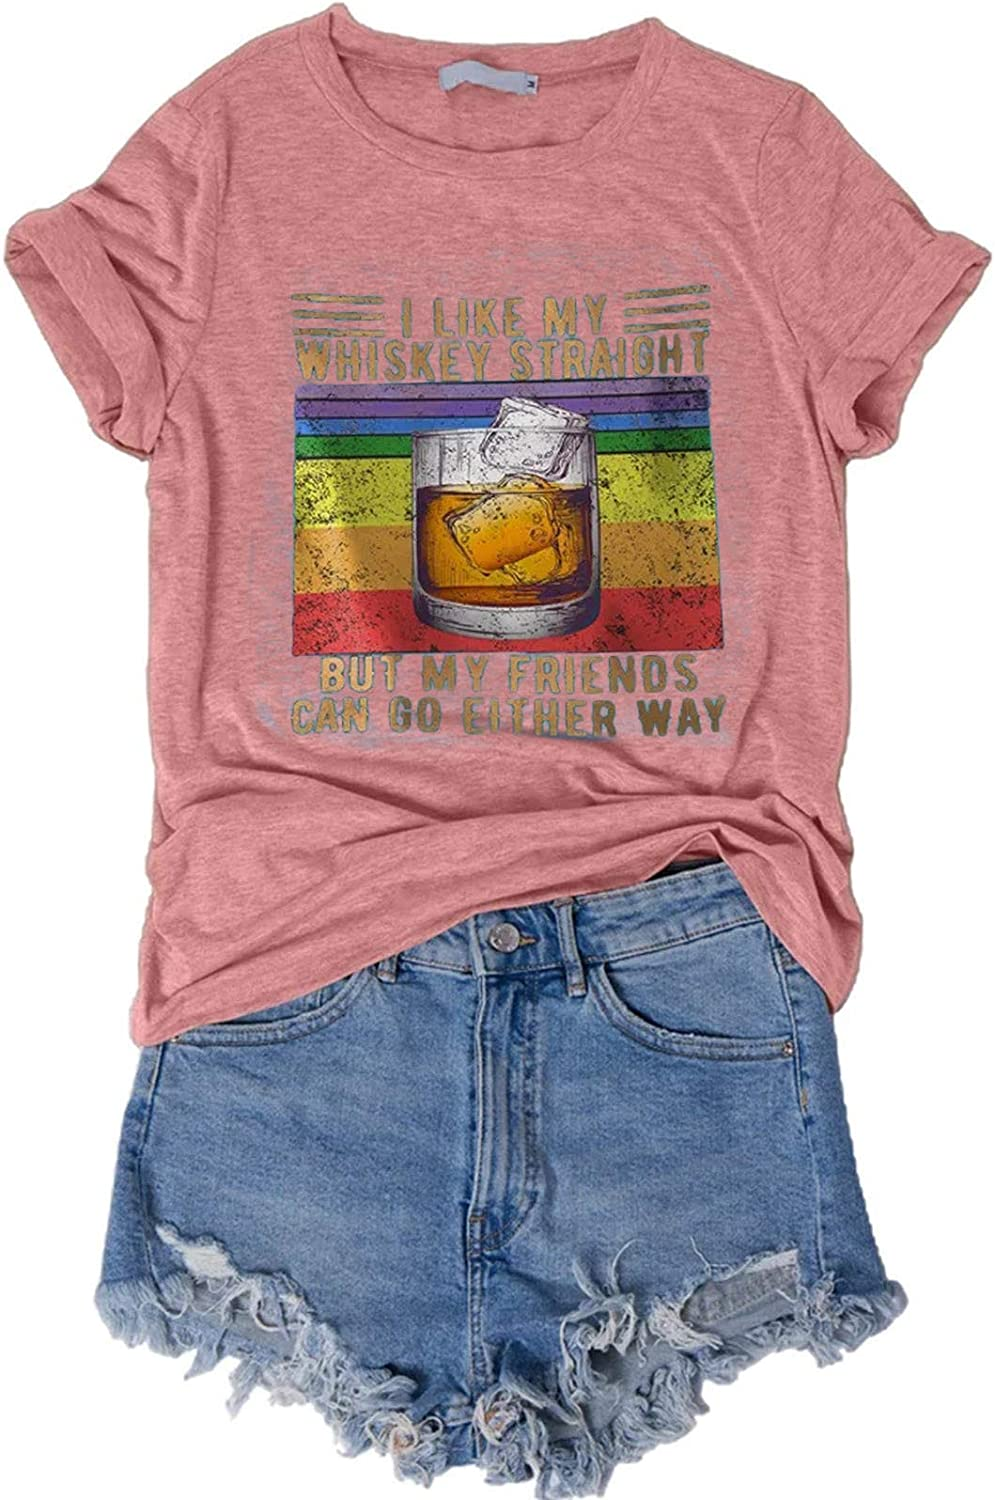 Funny Shirts for Women Discount is also underway 5 ☆ popular with Sayings Graphic - Vintage I Lik Tees